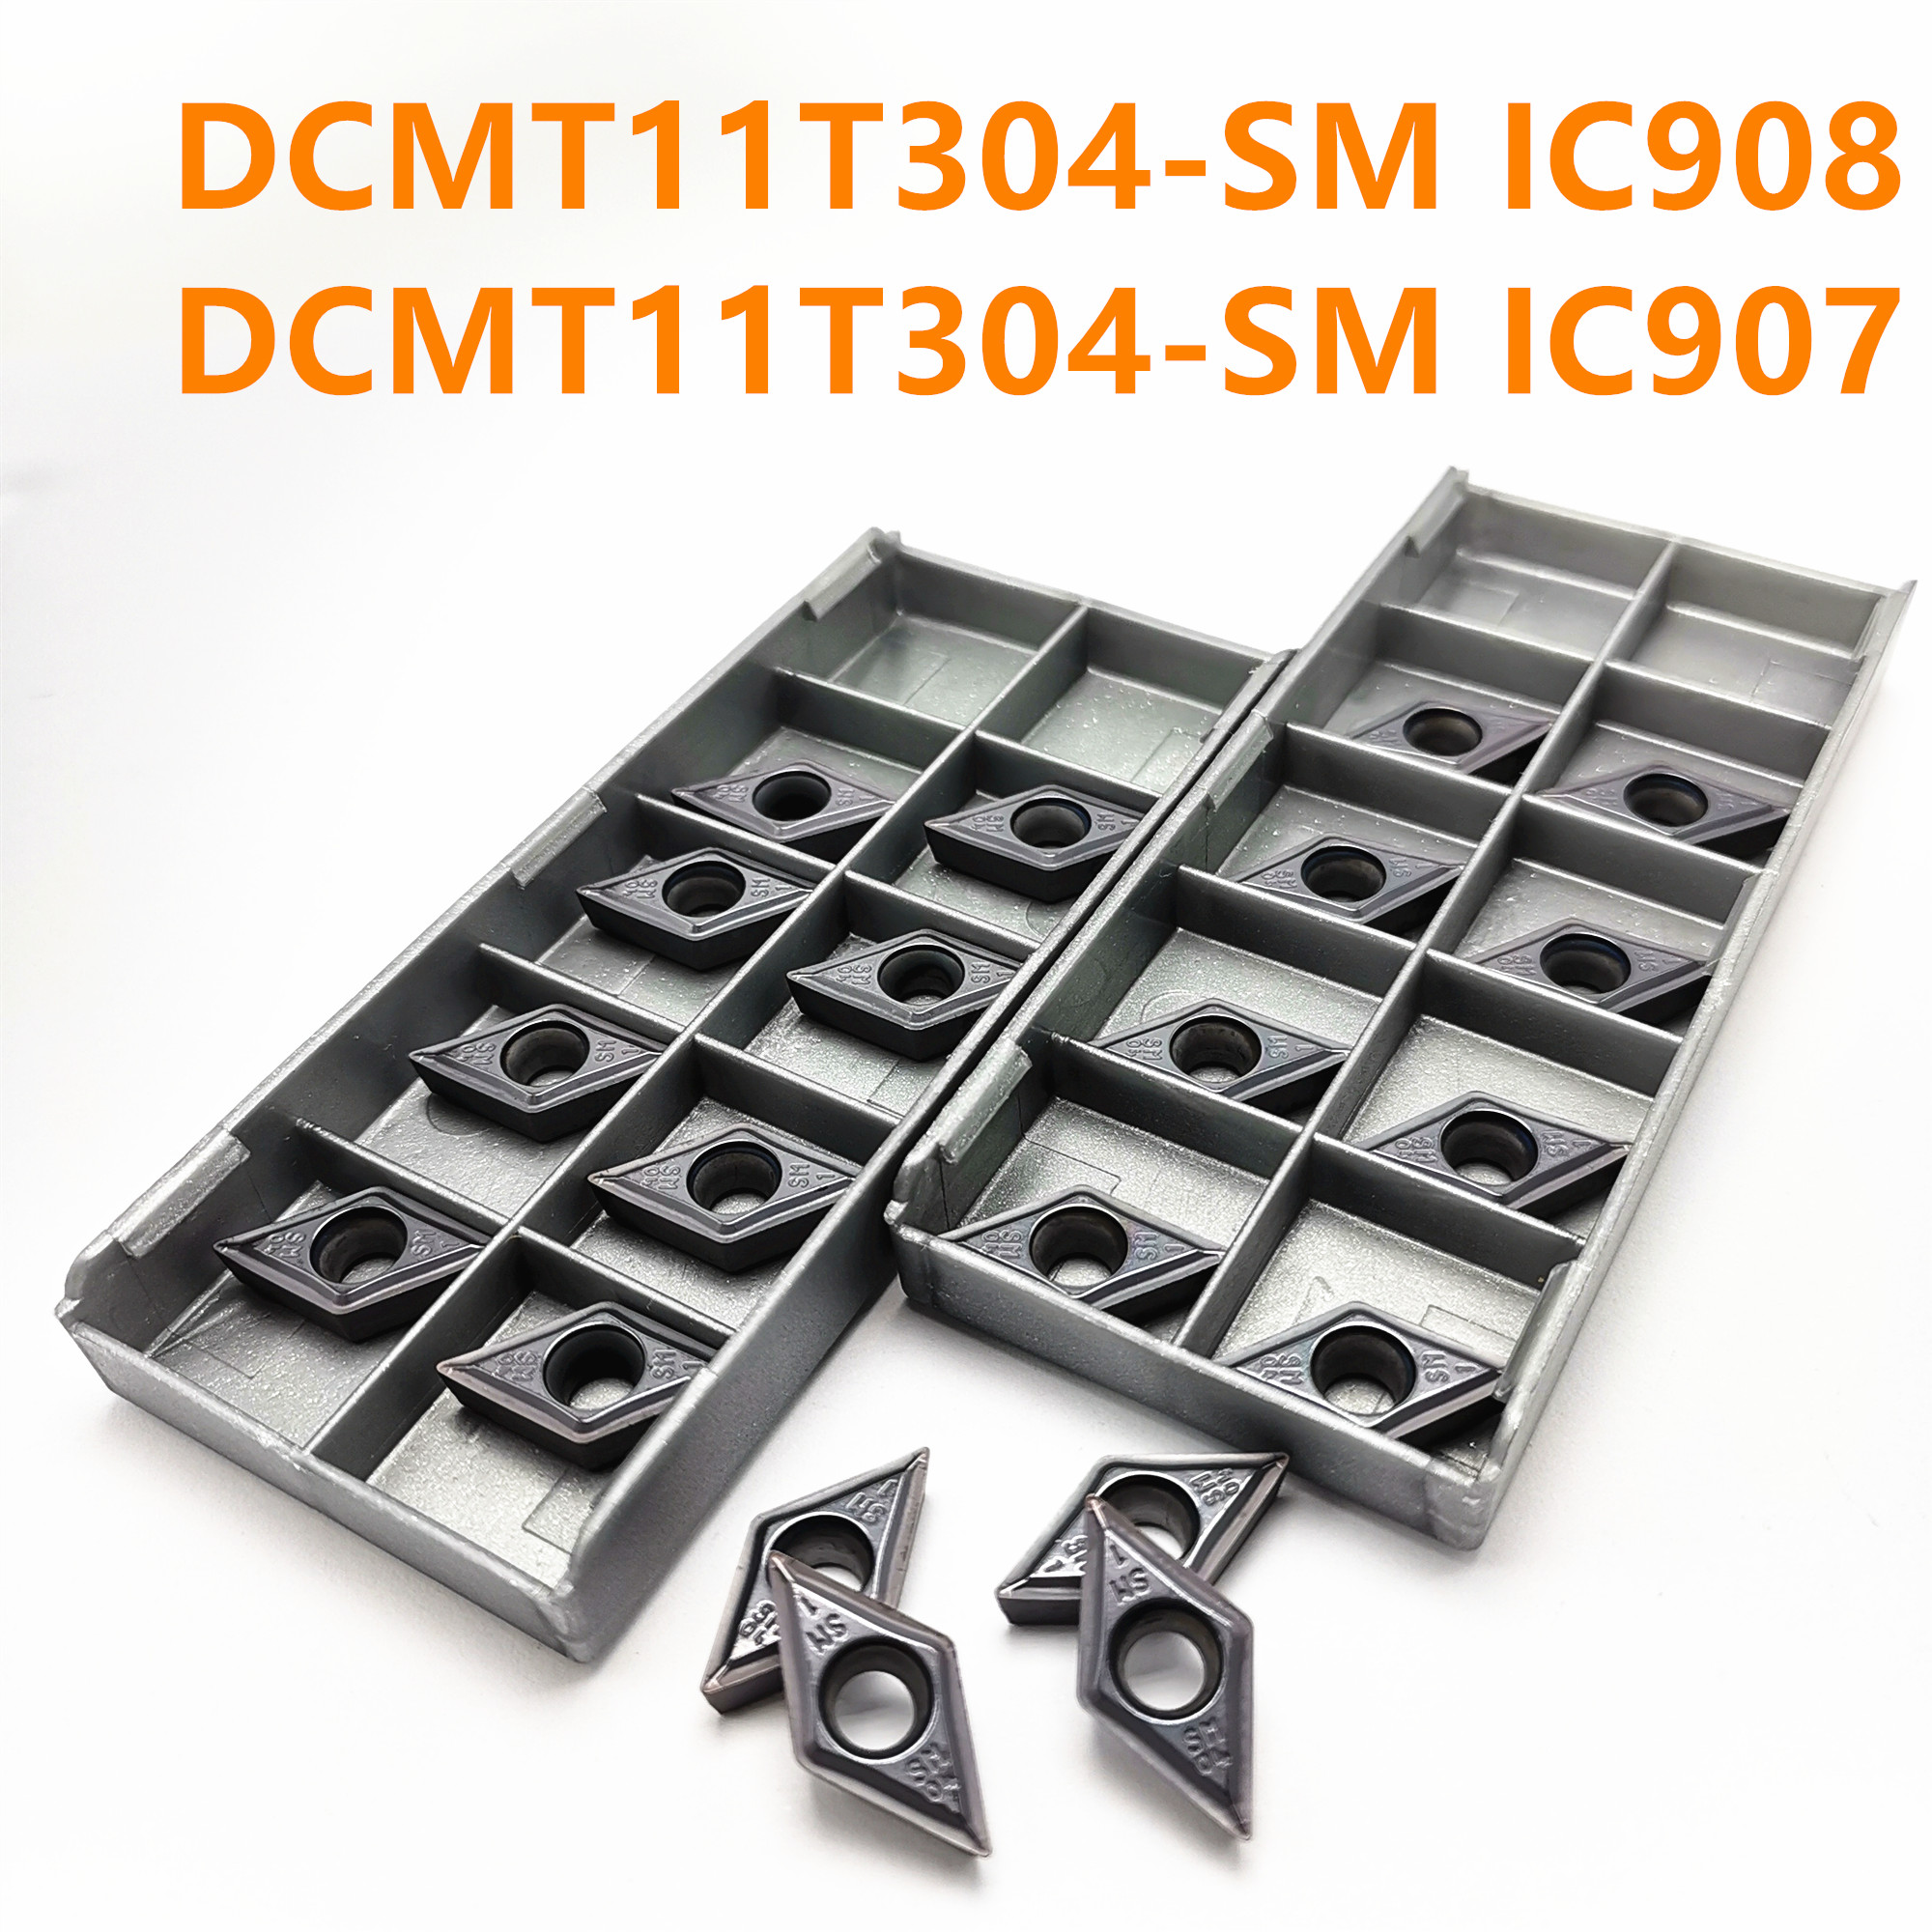 Tungsten Carbide DCMT11T304 IC907 / 908 Insert Internal Turning Tool DCMT 11T304 Lathe CNC